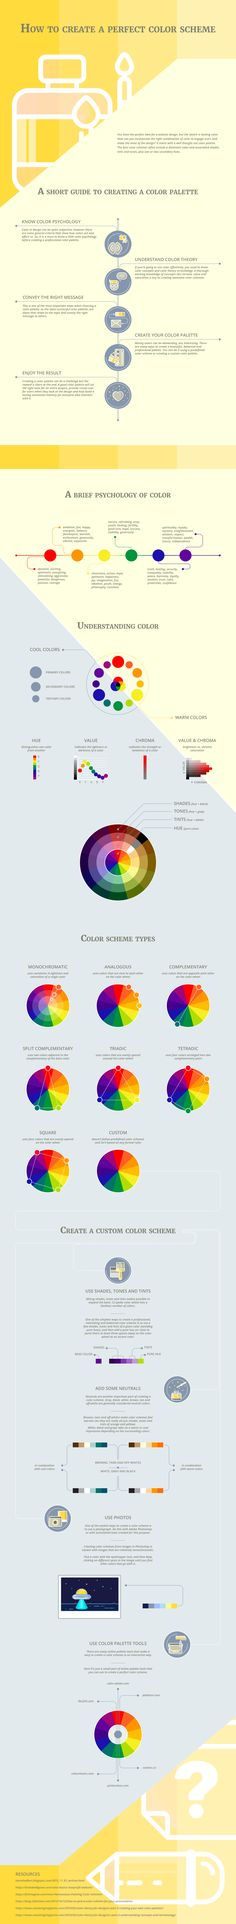 How to Create a Perfect Color Scheme [Infographic] - Designmodo